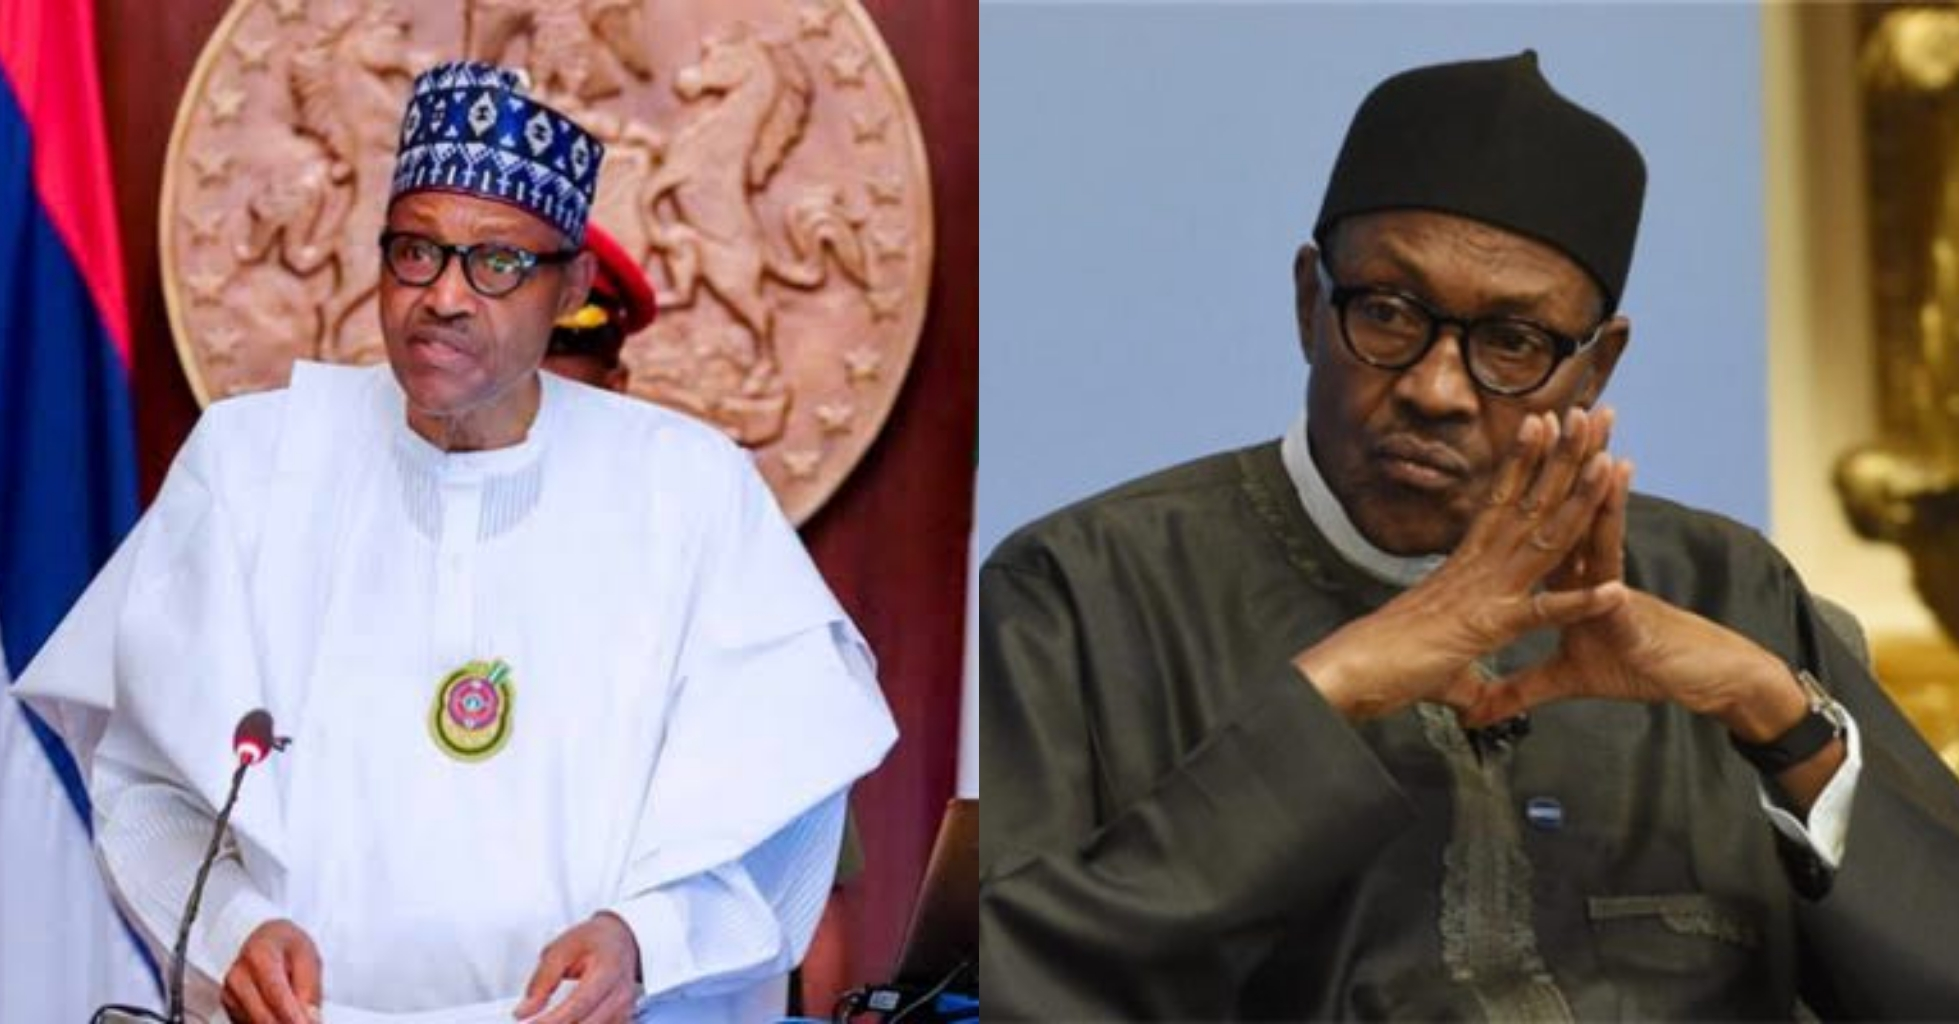 Peace and security will be restored in the country– President Buhari Tells Nigerians